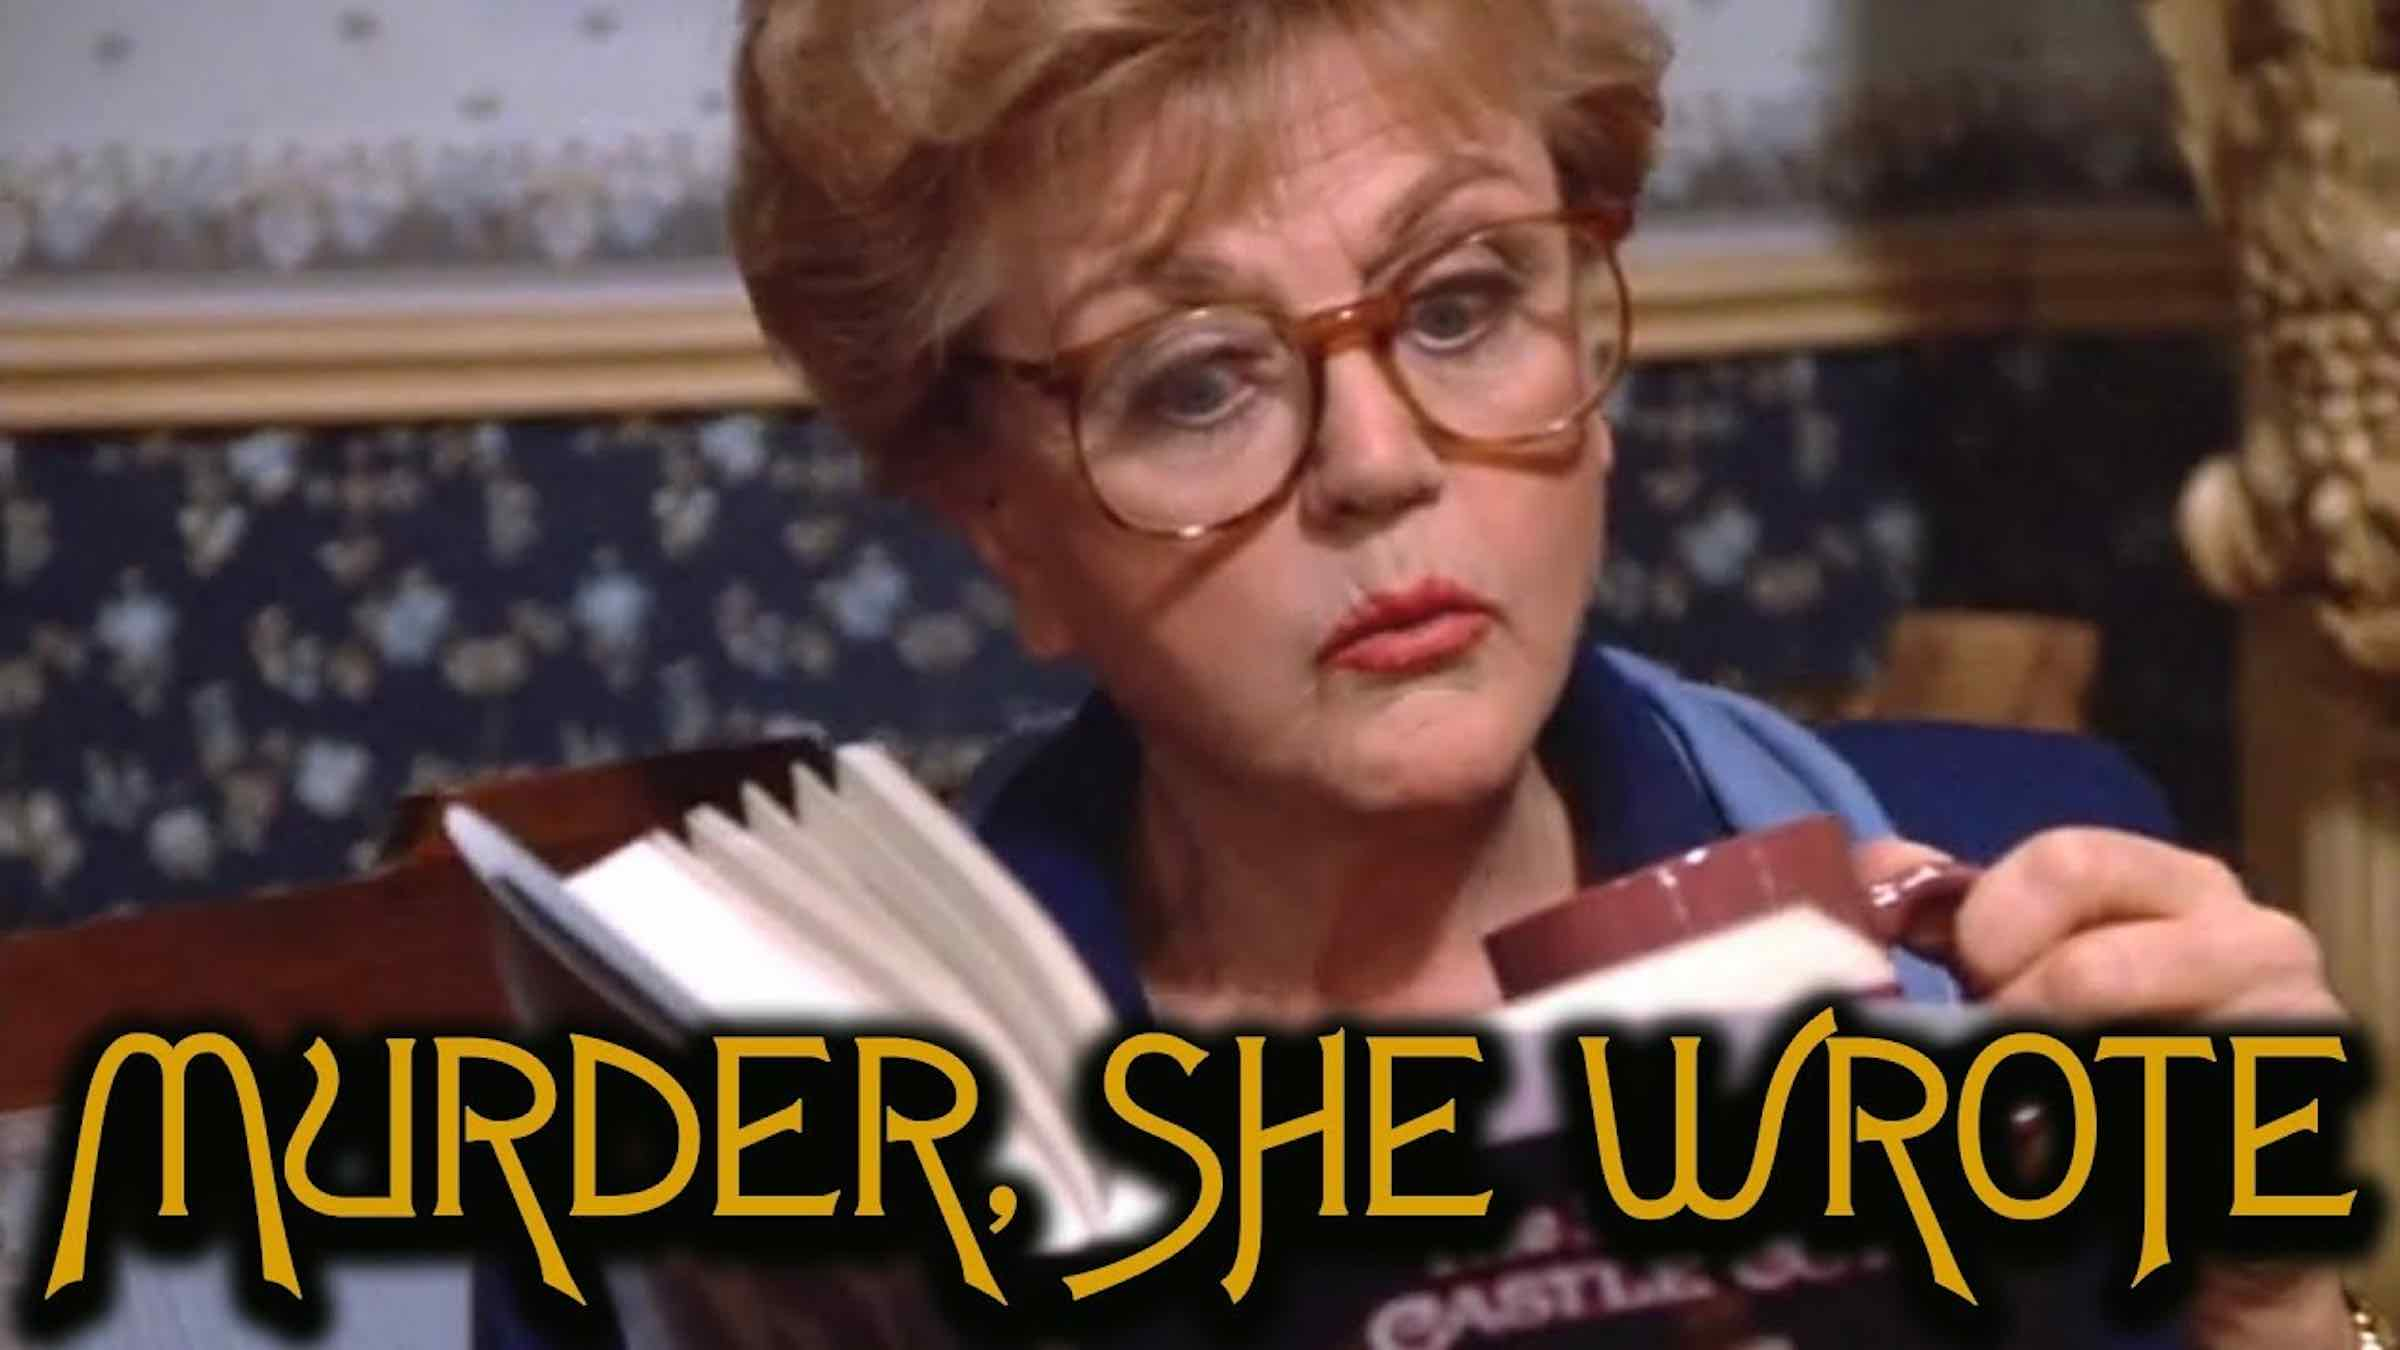 The coziest episodes of 'Murder She Wrote' to enjoy this quarantine – Film  Daily